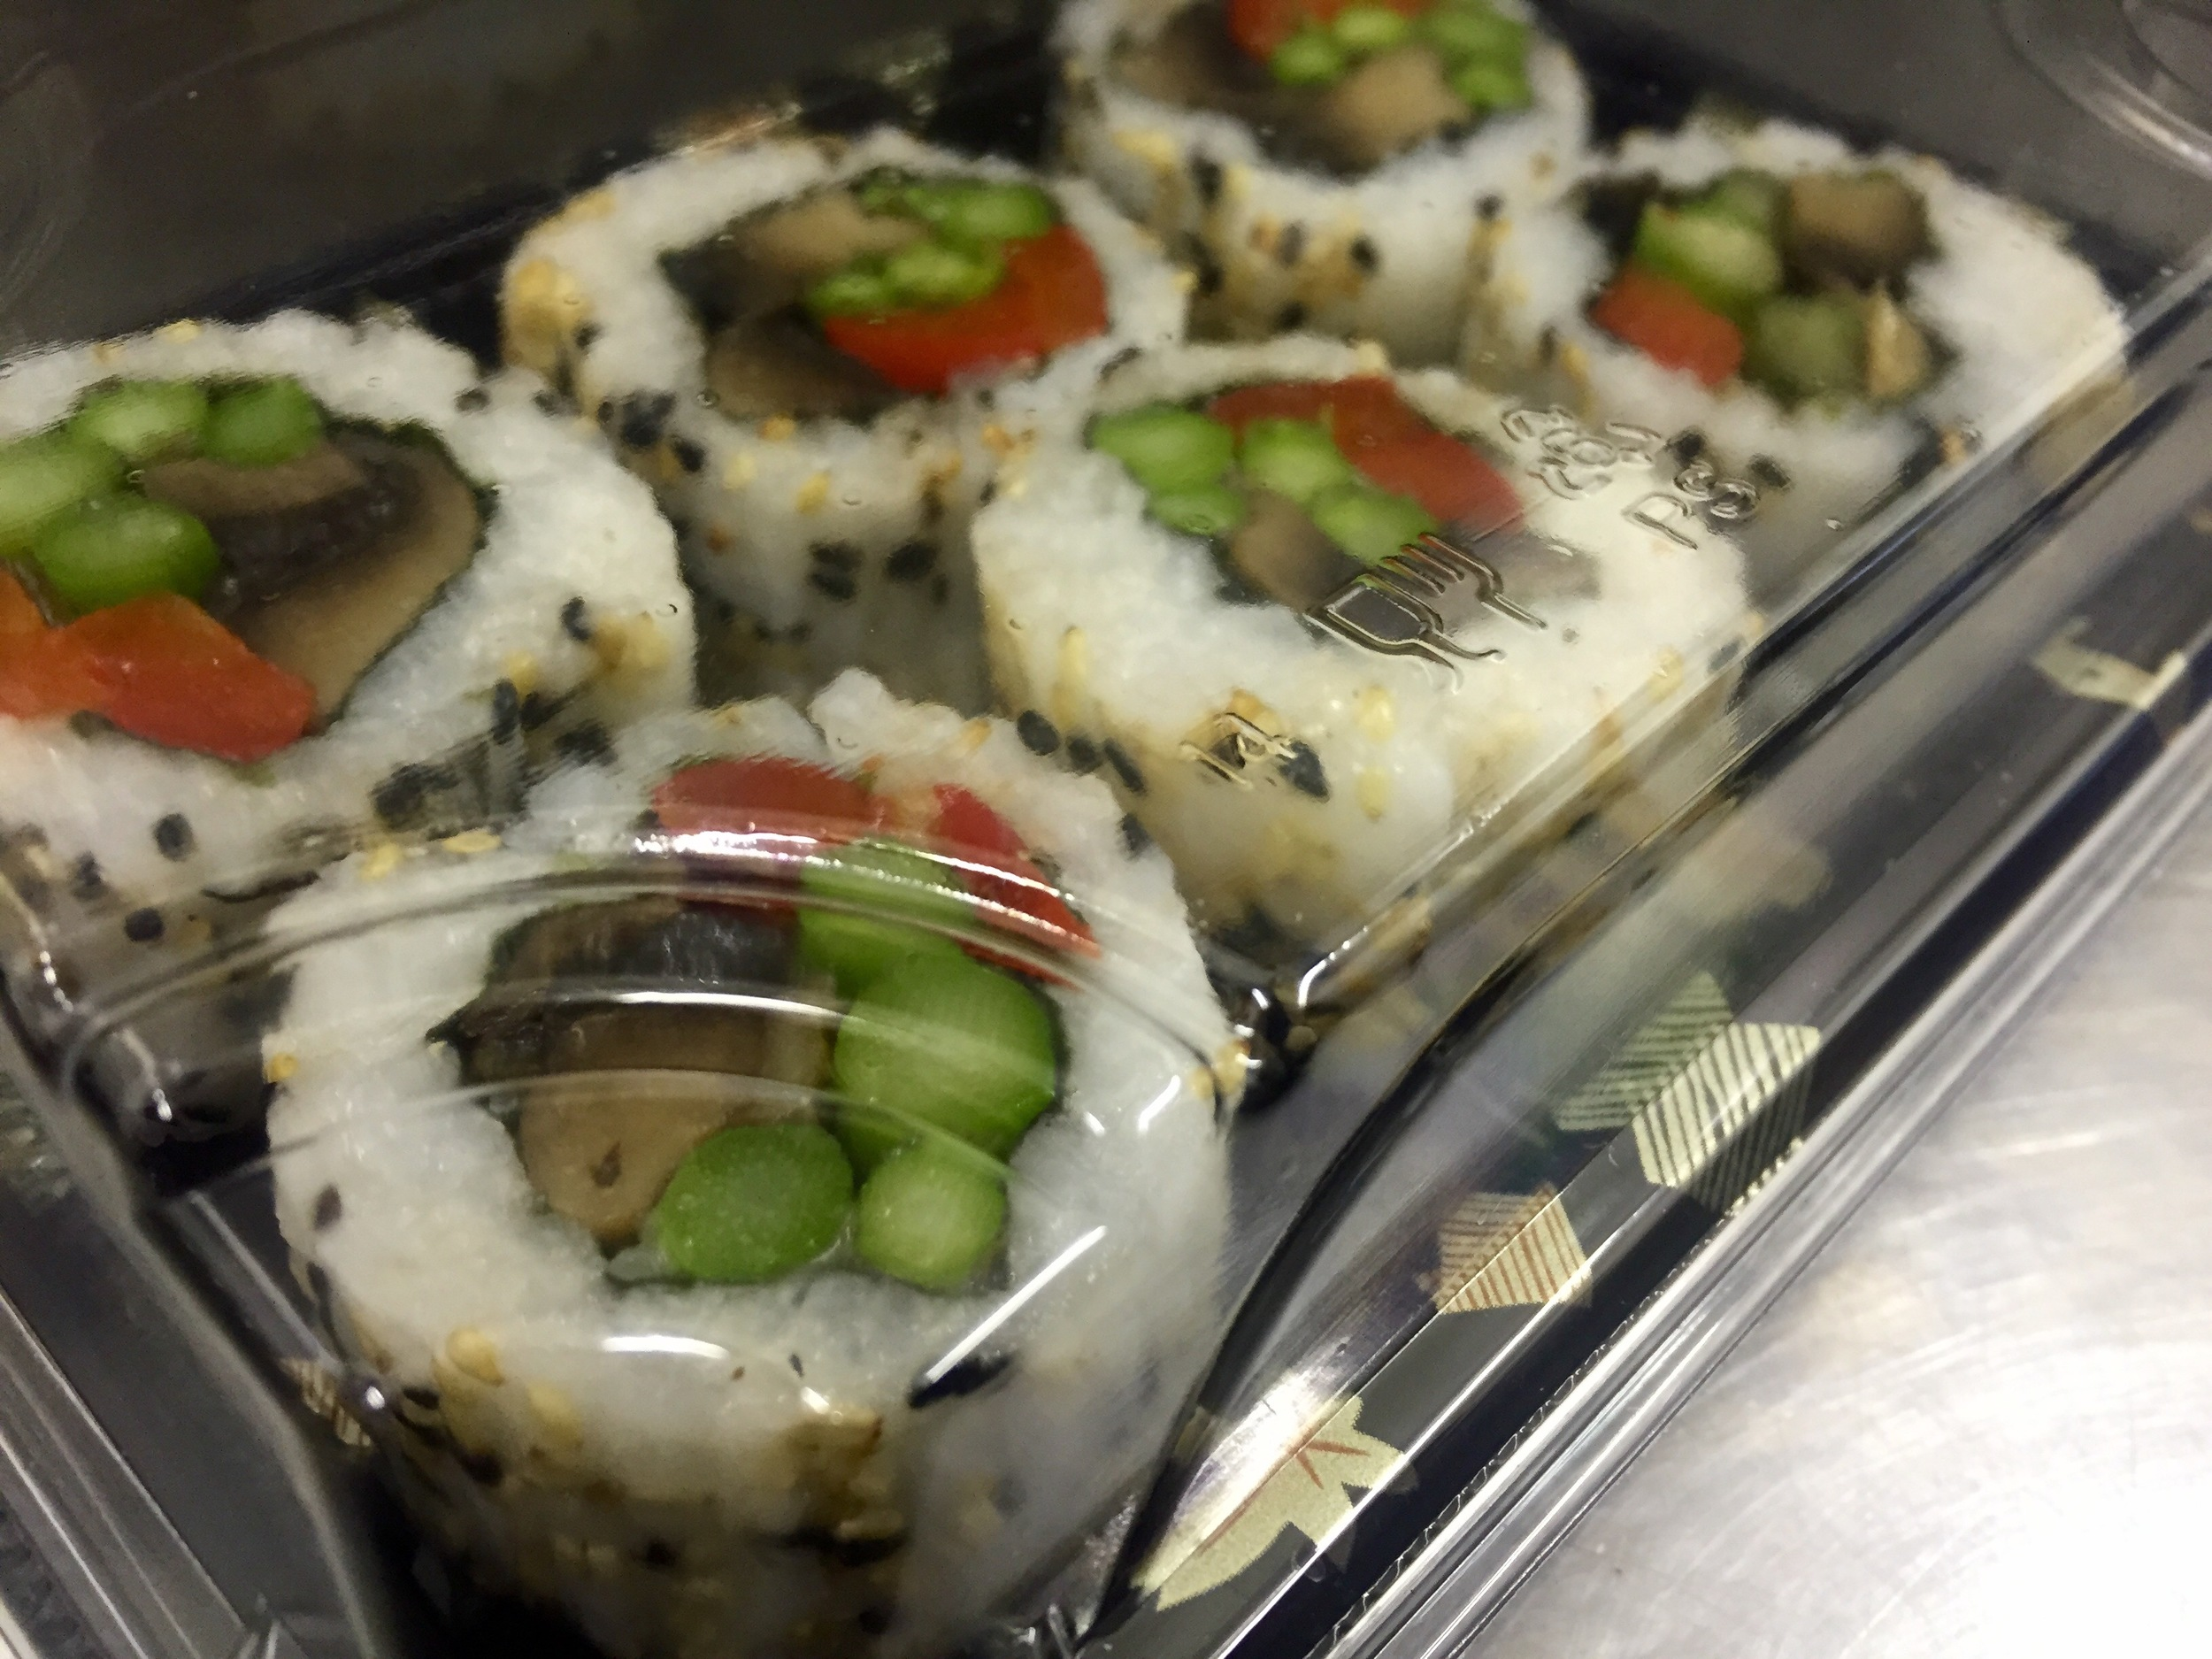 6 x Mushroom, Asparagus & Roasted Red Pepper Inside Out Rolls - £5